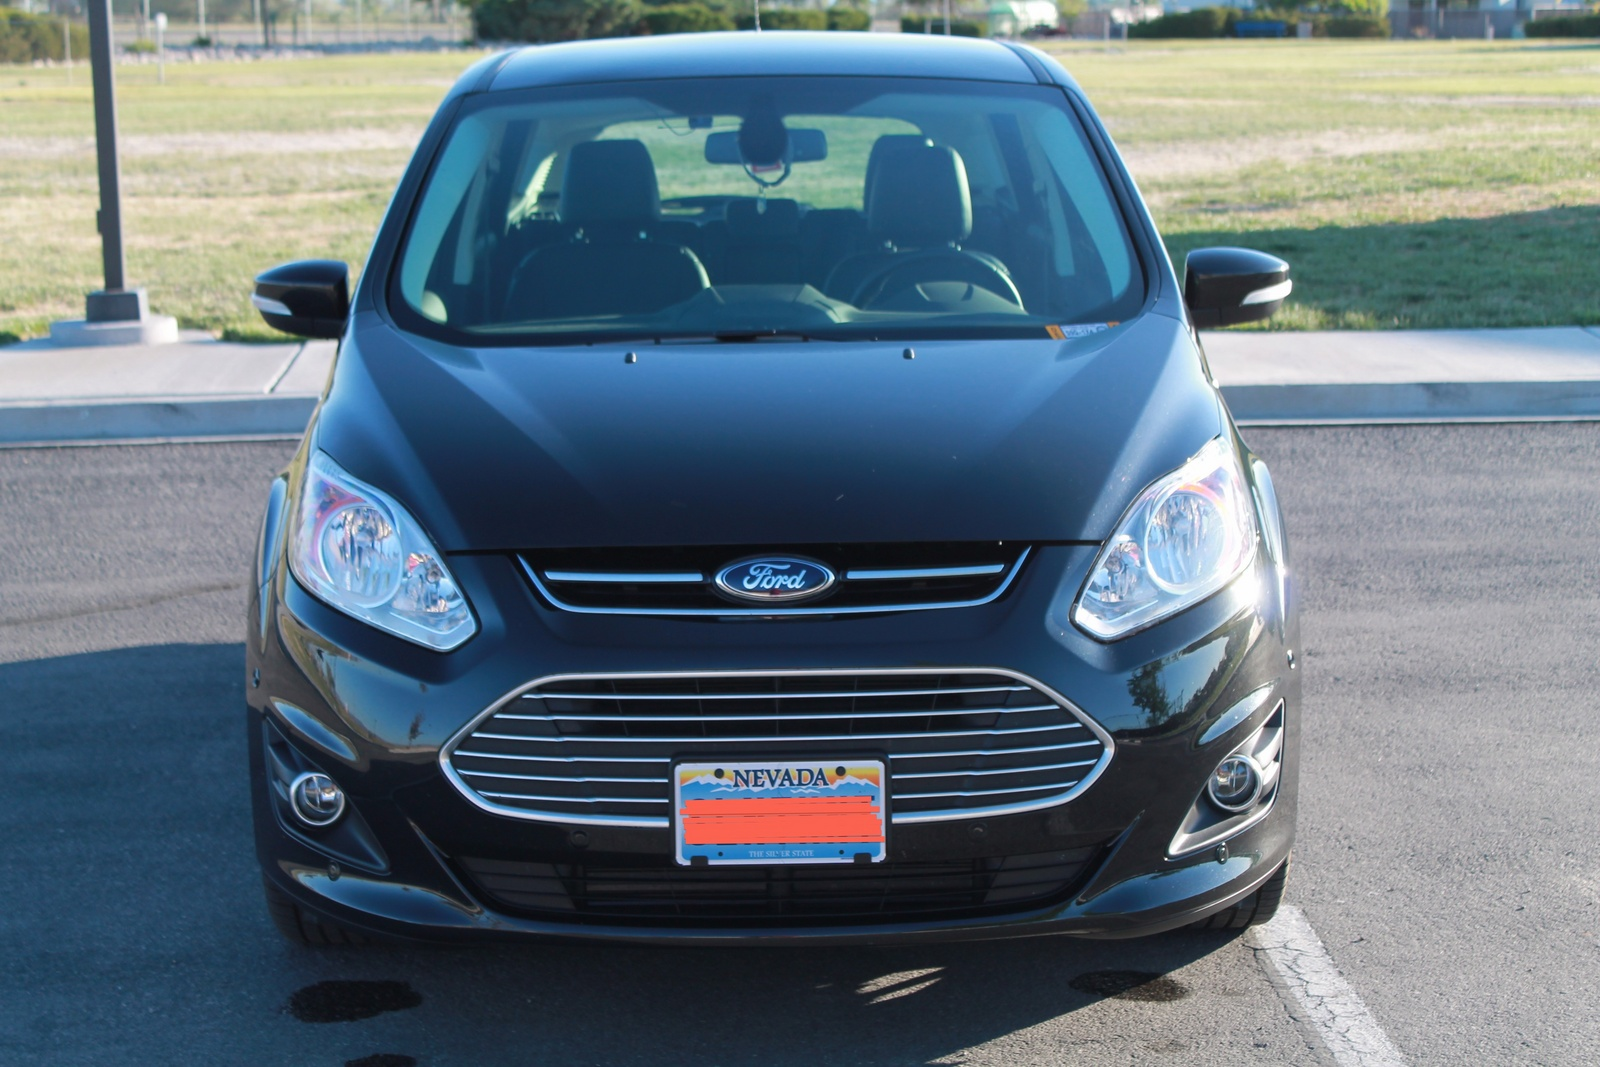 2013 Ford C-Max SEL Hybrid, Picture of 2013 Ford C-MAX SEL Hybrid, exterior